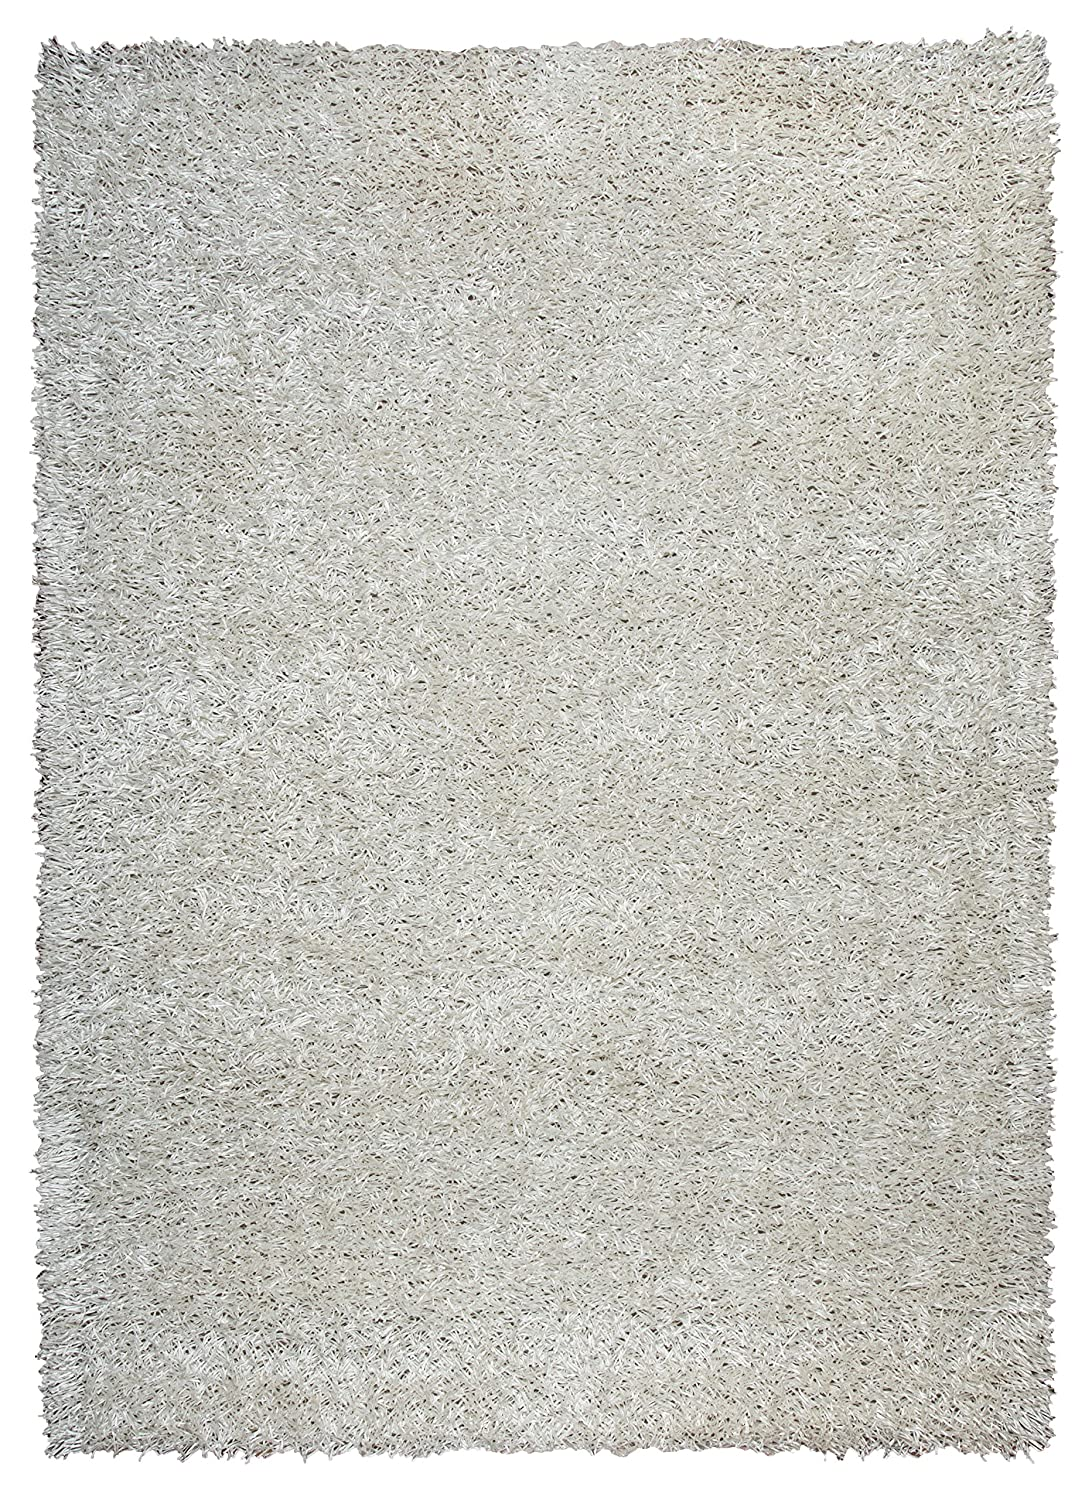 Kempton polyester area rug burgundy merlot colored 3 x3 area rugs - Amazon Com Rizzy Home Km2314 Kempton 8 Feet By 10 Feet Area Rug Ivory Kitchen Dining